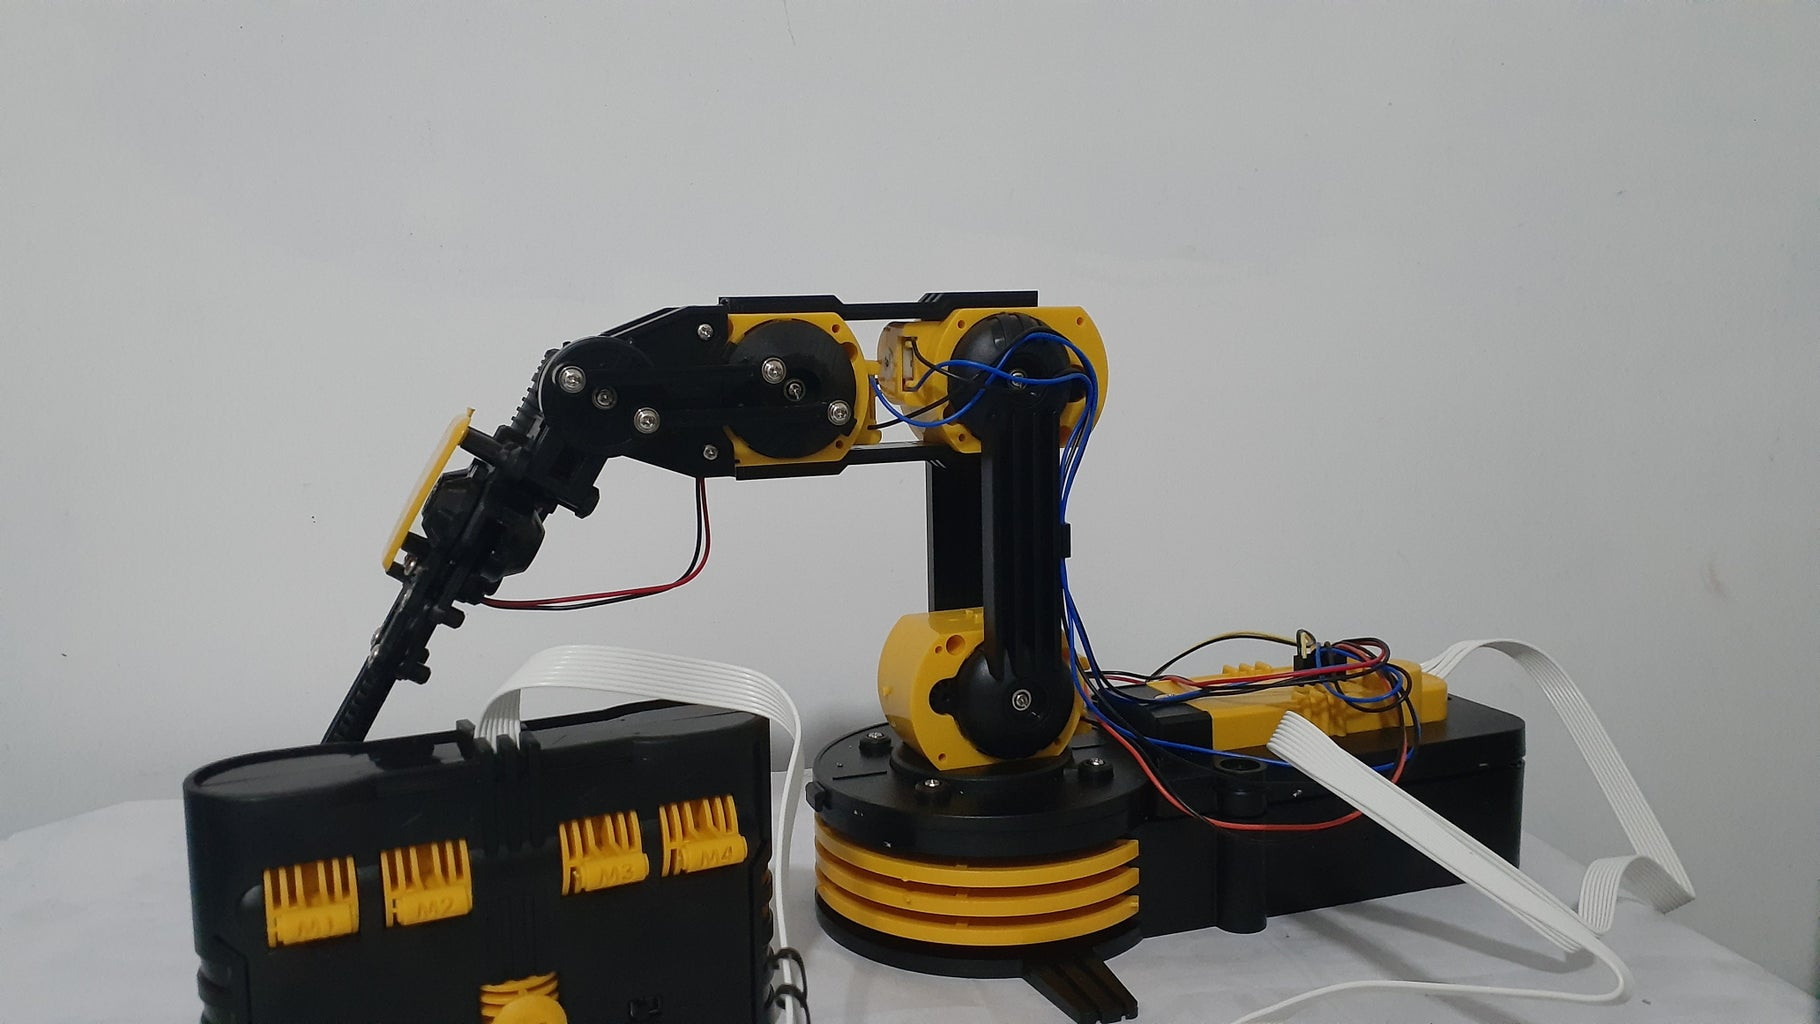 Finalize Wired Control Robot Arm